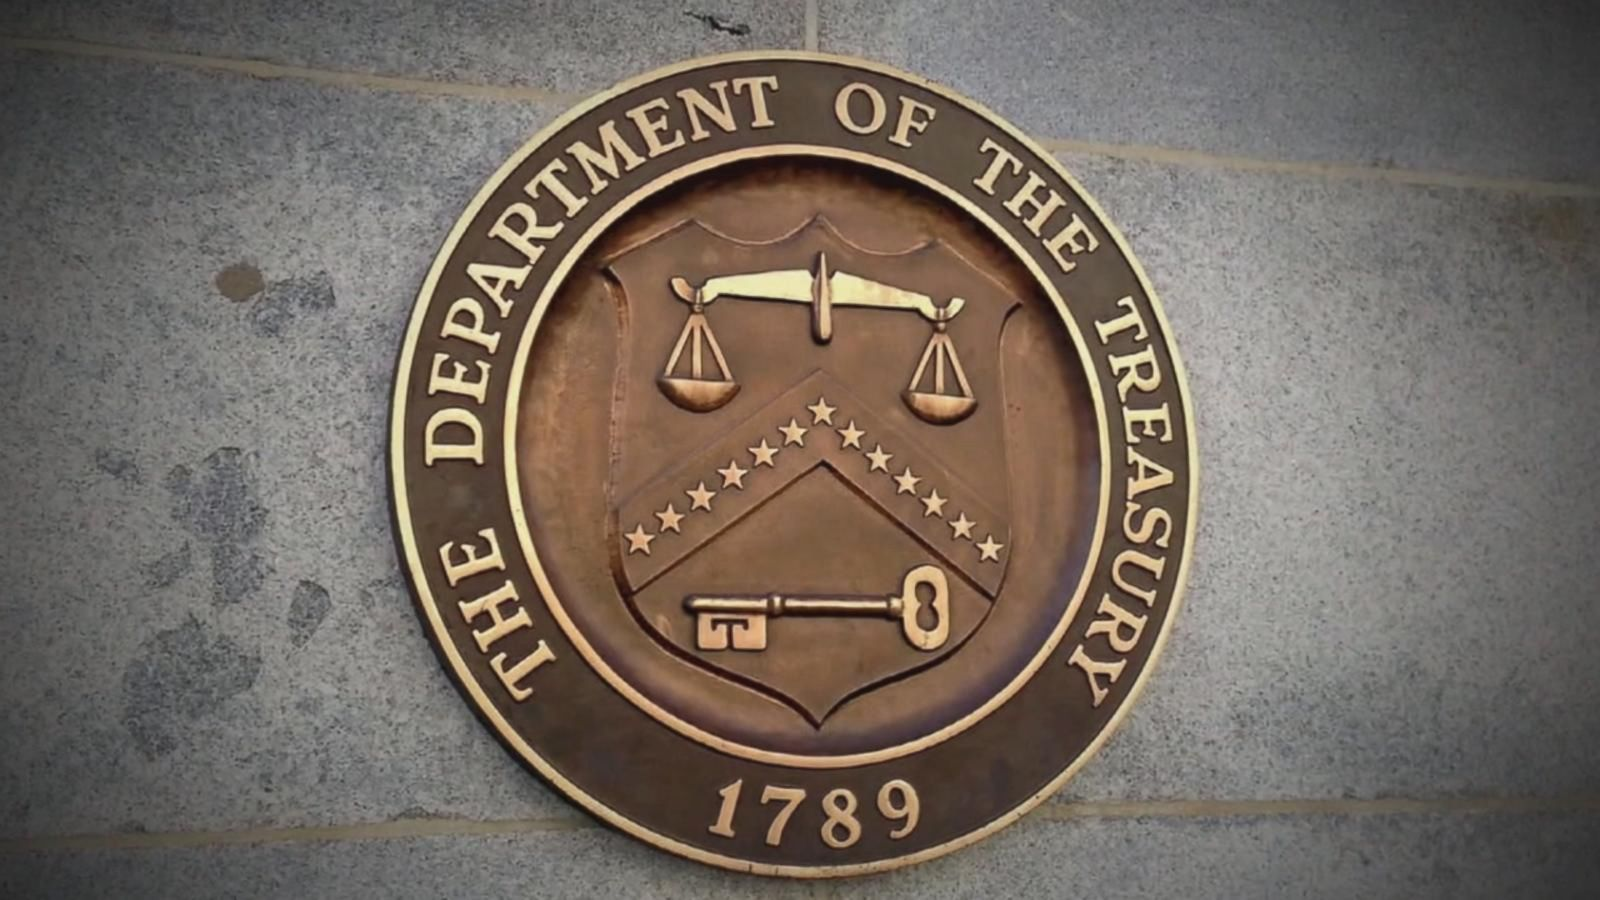 Federal authorities have arrested nearly two dozen people across the United States -- and charged more overseas -- in connection with a far-reaching IRS scam that used fear and intimidation to deceive victims.